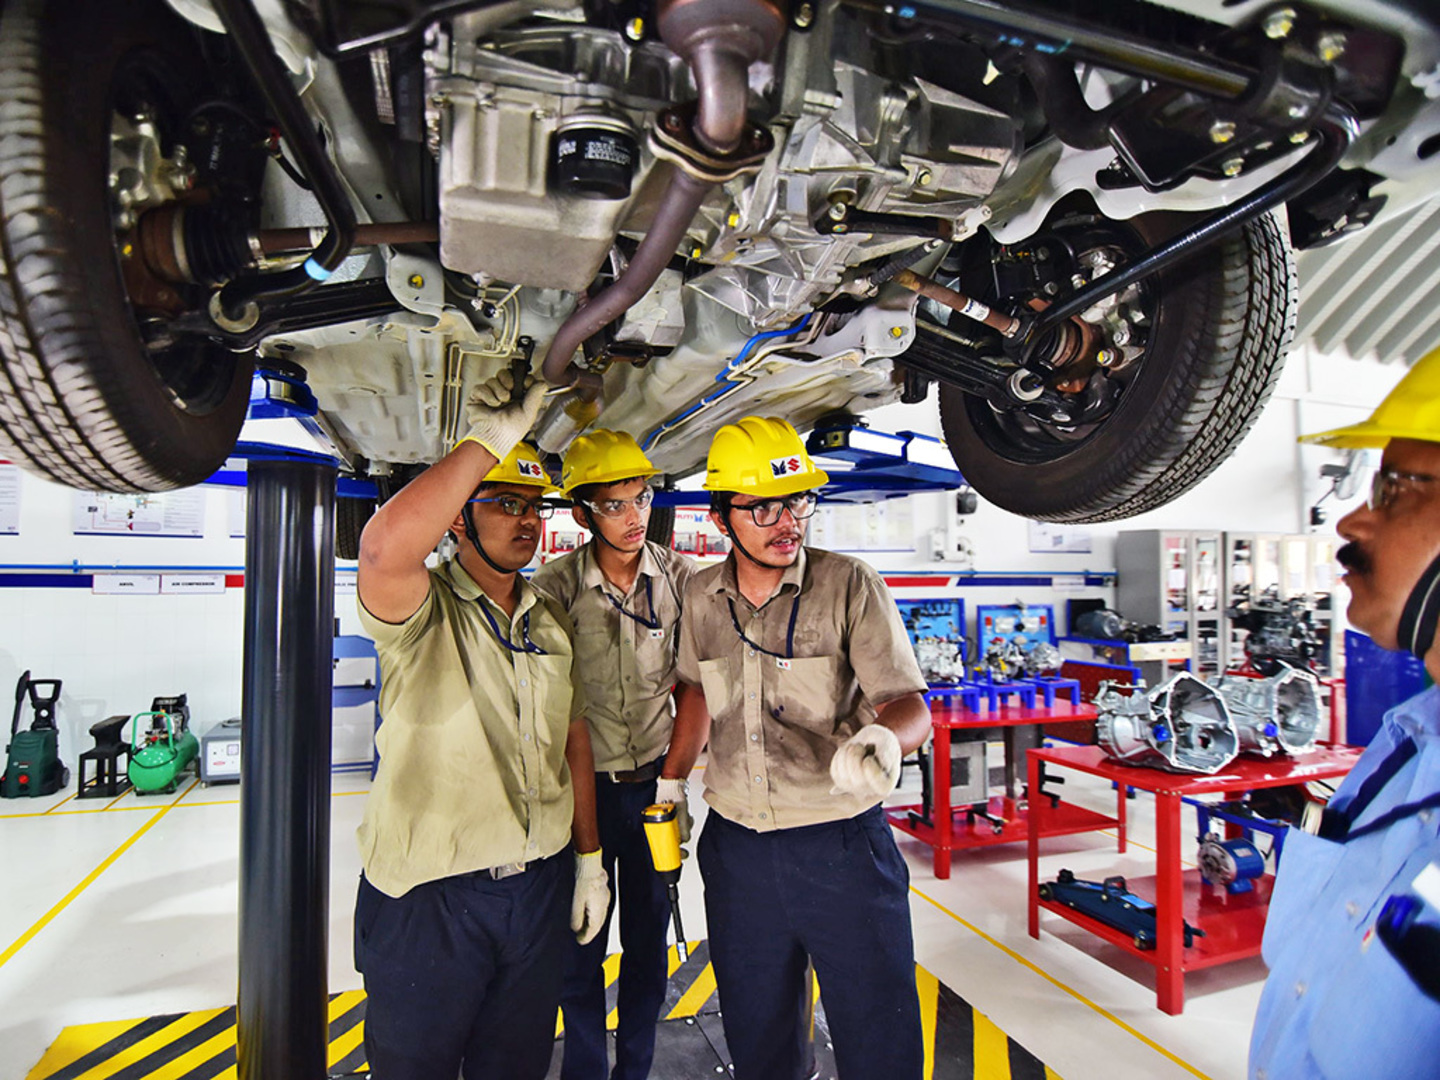 A light foot on the pedal: From Maruti to Tata, carmakers bank on lean thinking amid slow recovery